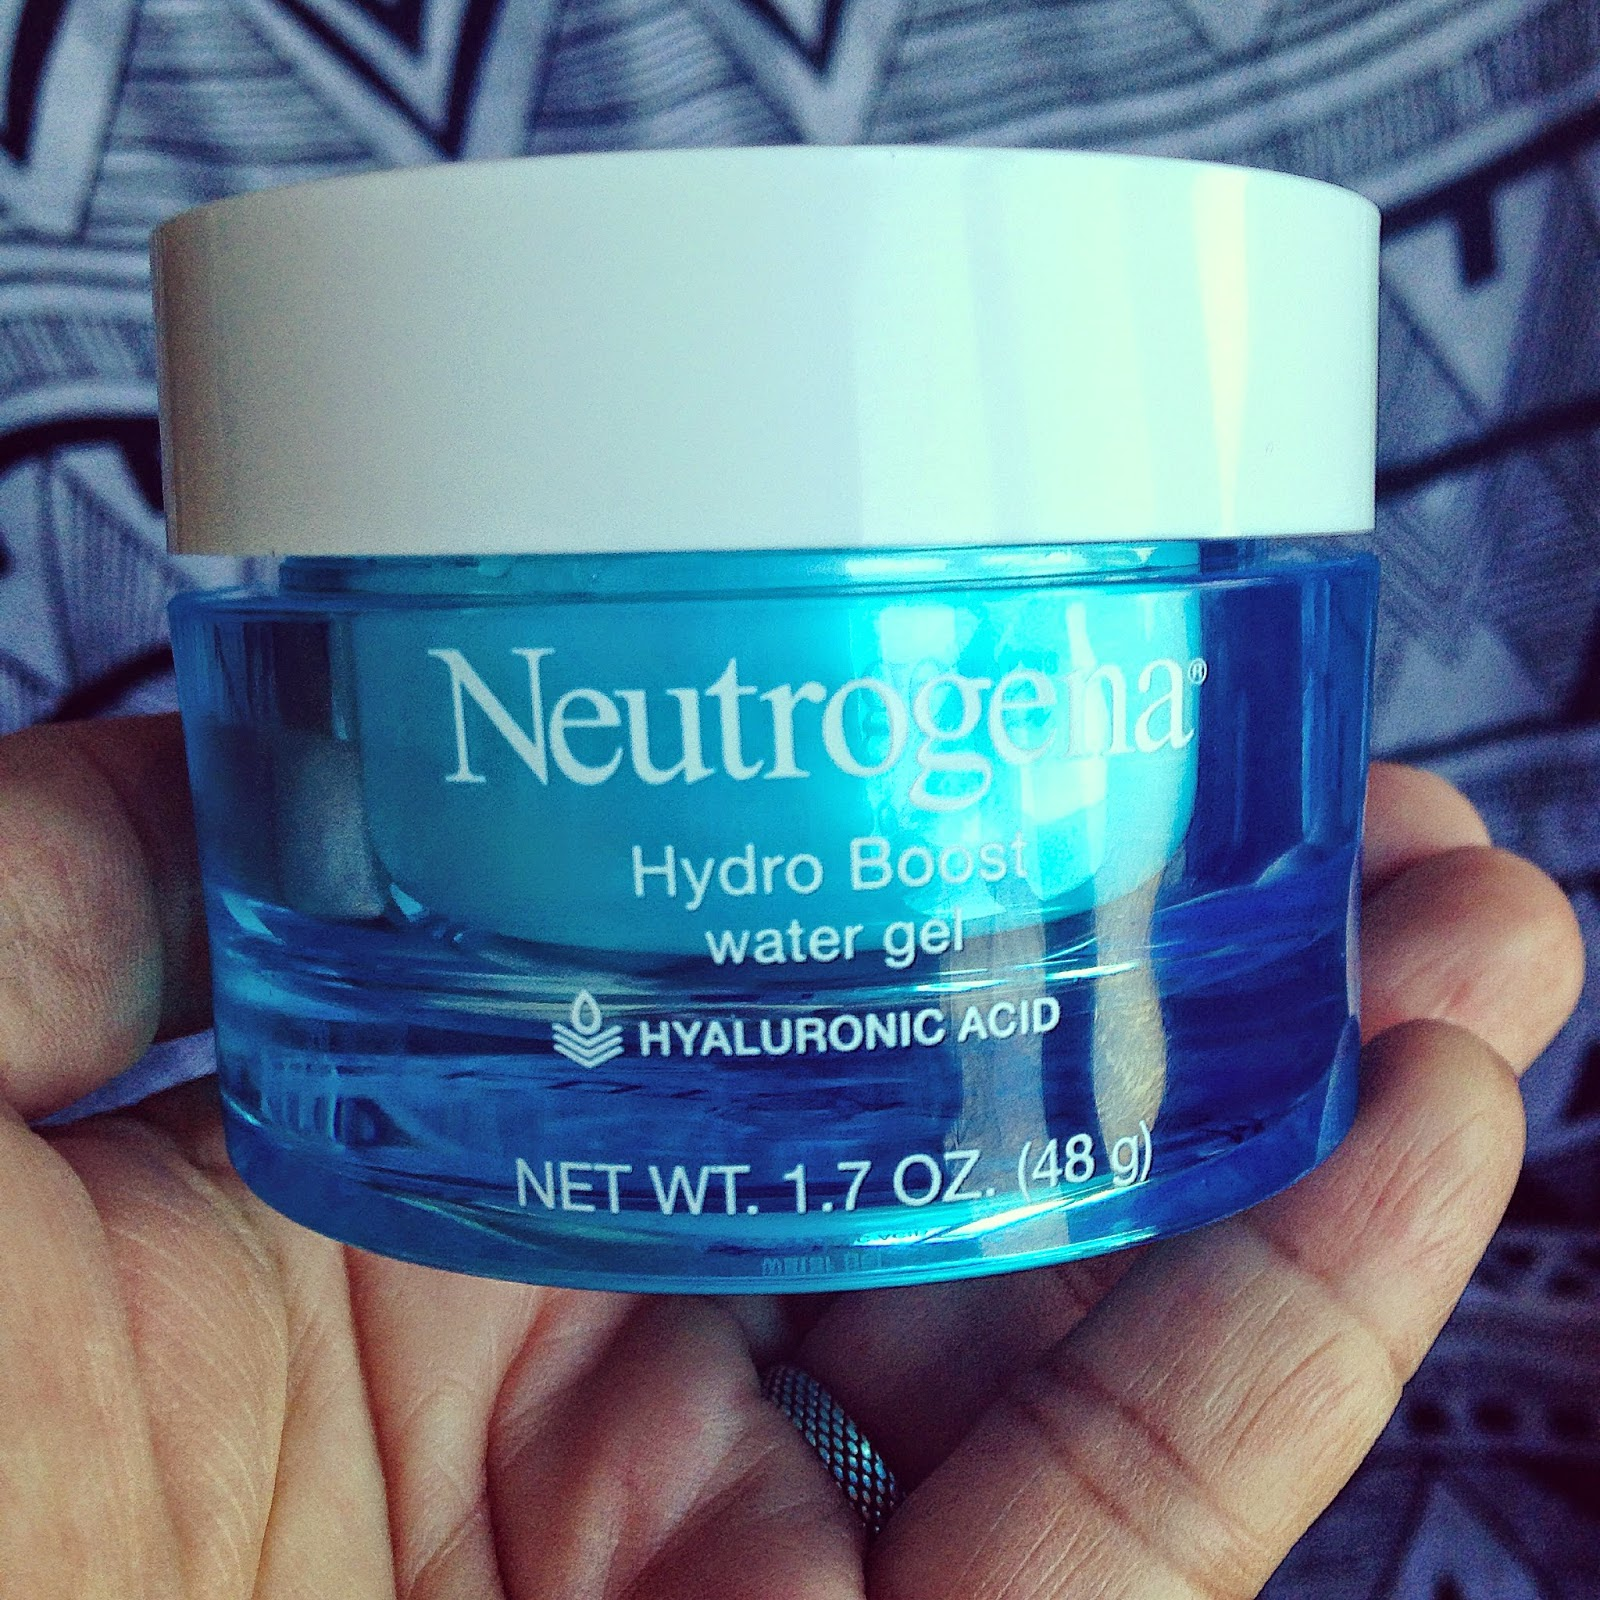 neutrogena, hydro boost, water gel, skincare, beauty, hyaluronic acid,